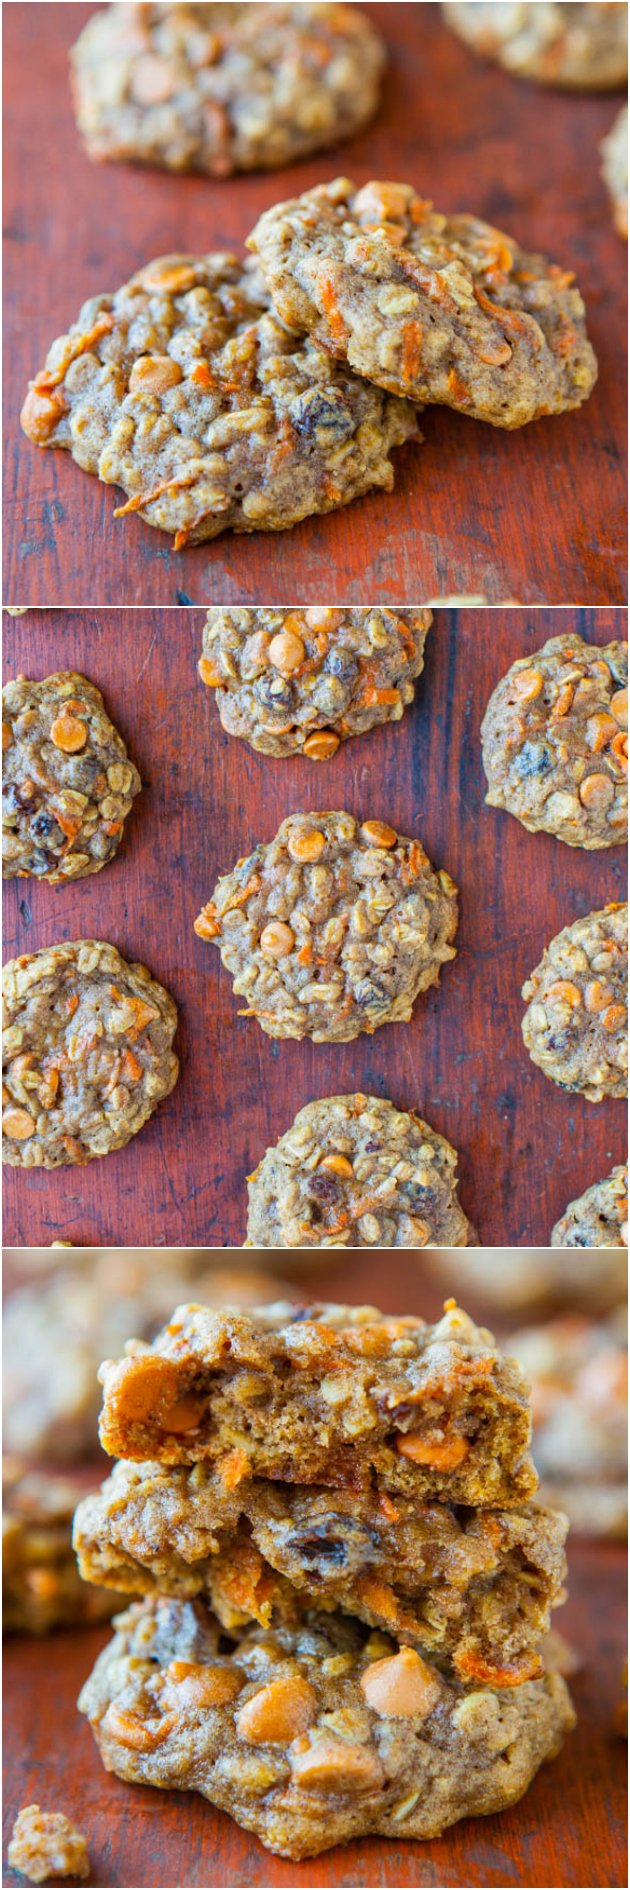 Spiced Carrot Cake Cookies — All the flavors of richly spiced carrot cake, but in cookie form! Soft, chewy, extremely moist, and not at all cakey.